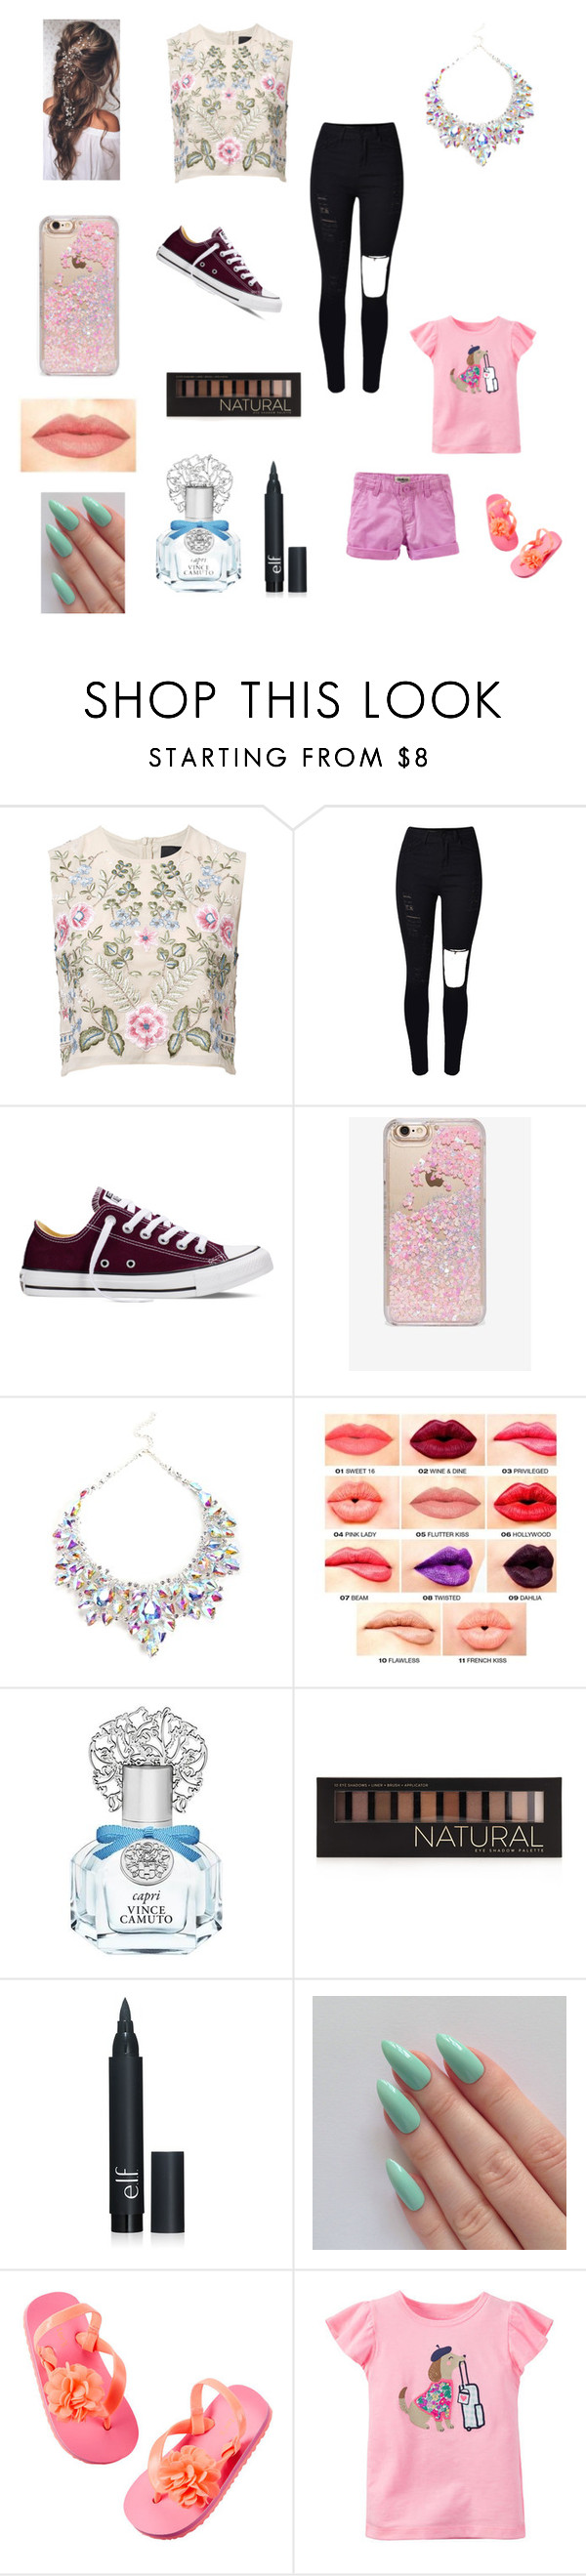 """Having mother and daughter time"" by bellzellz ❤ liked on Polyvore featuring Needle & Thread, Converse, Skinnydip, NYX, Vince Camuto, Forever 21 and Carter's"